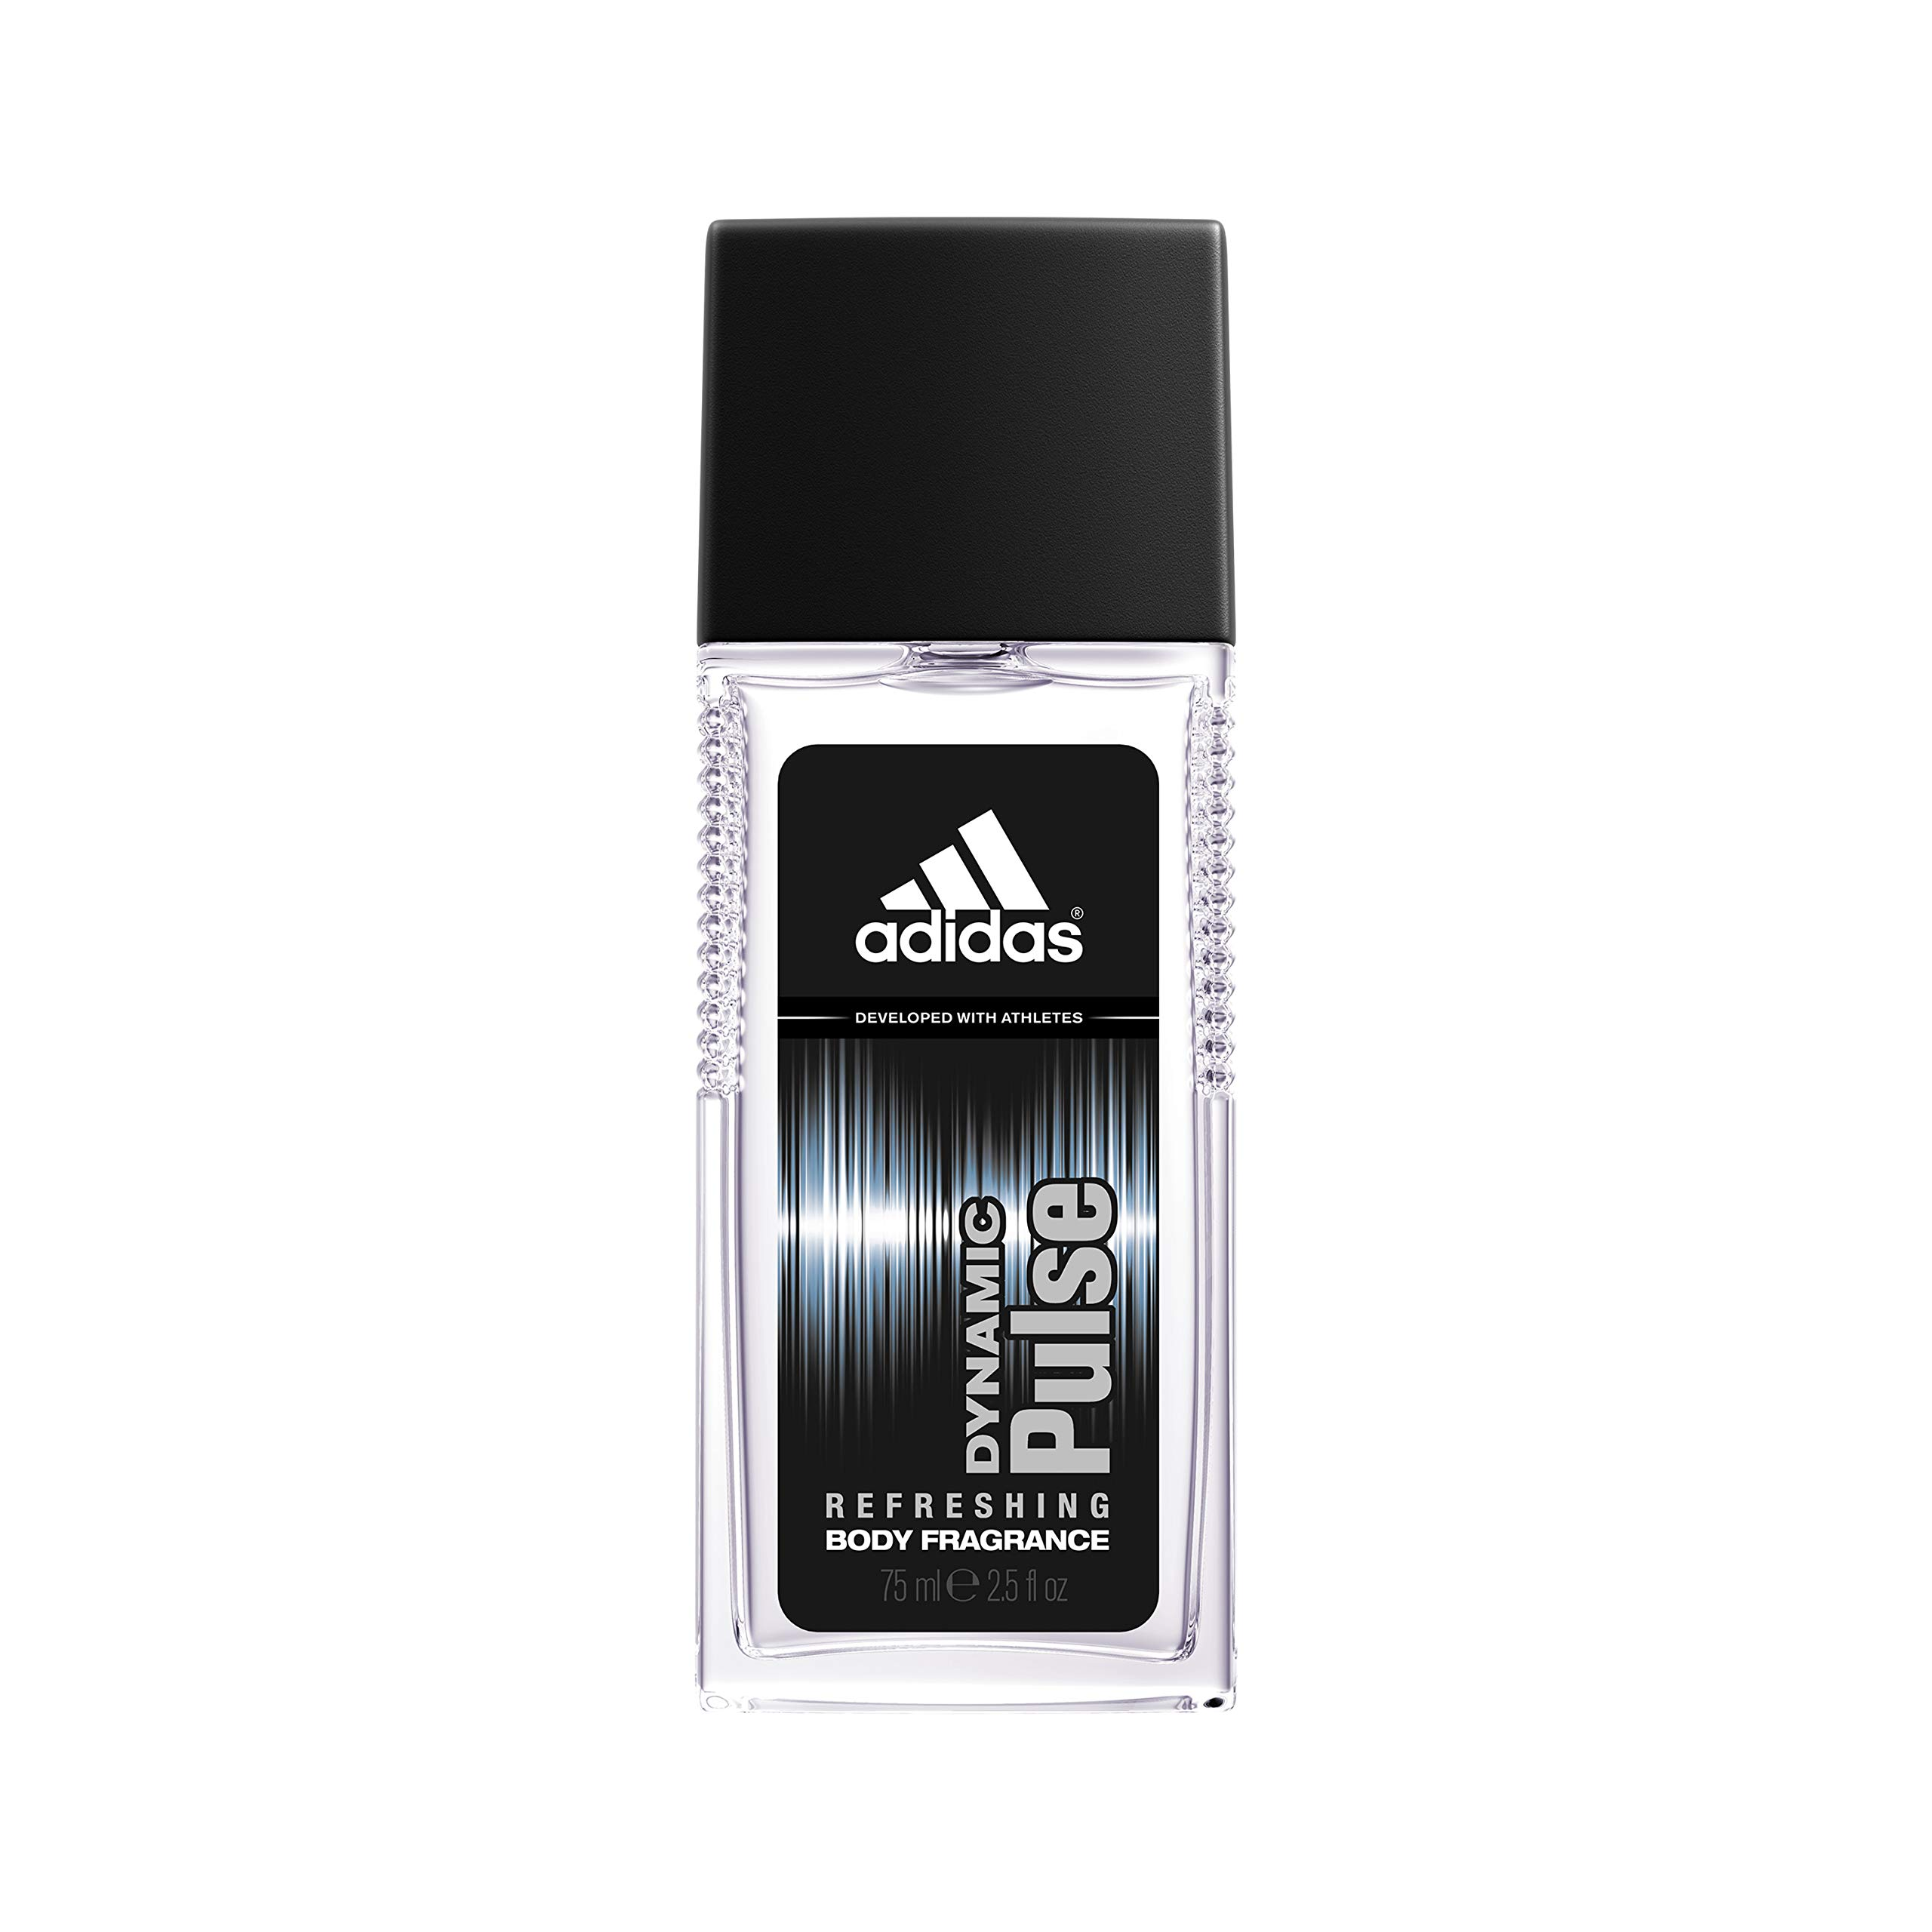 outlet store cd85e d1a2a Adidas Fragrance Body Fragrance Dynamic Pulse Him 2.5 Fluid Ounce  Refreshing Cologne with notes of Mint